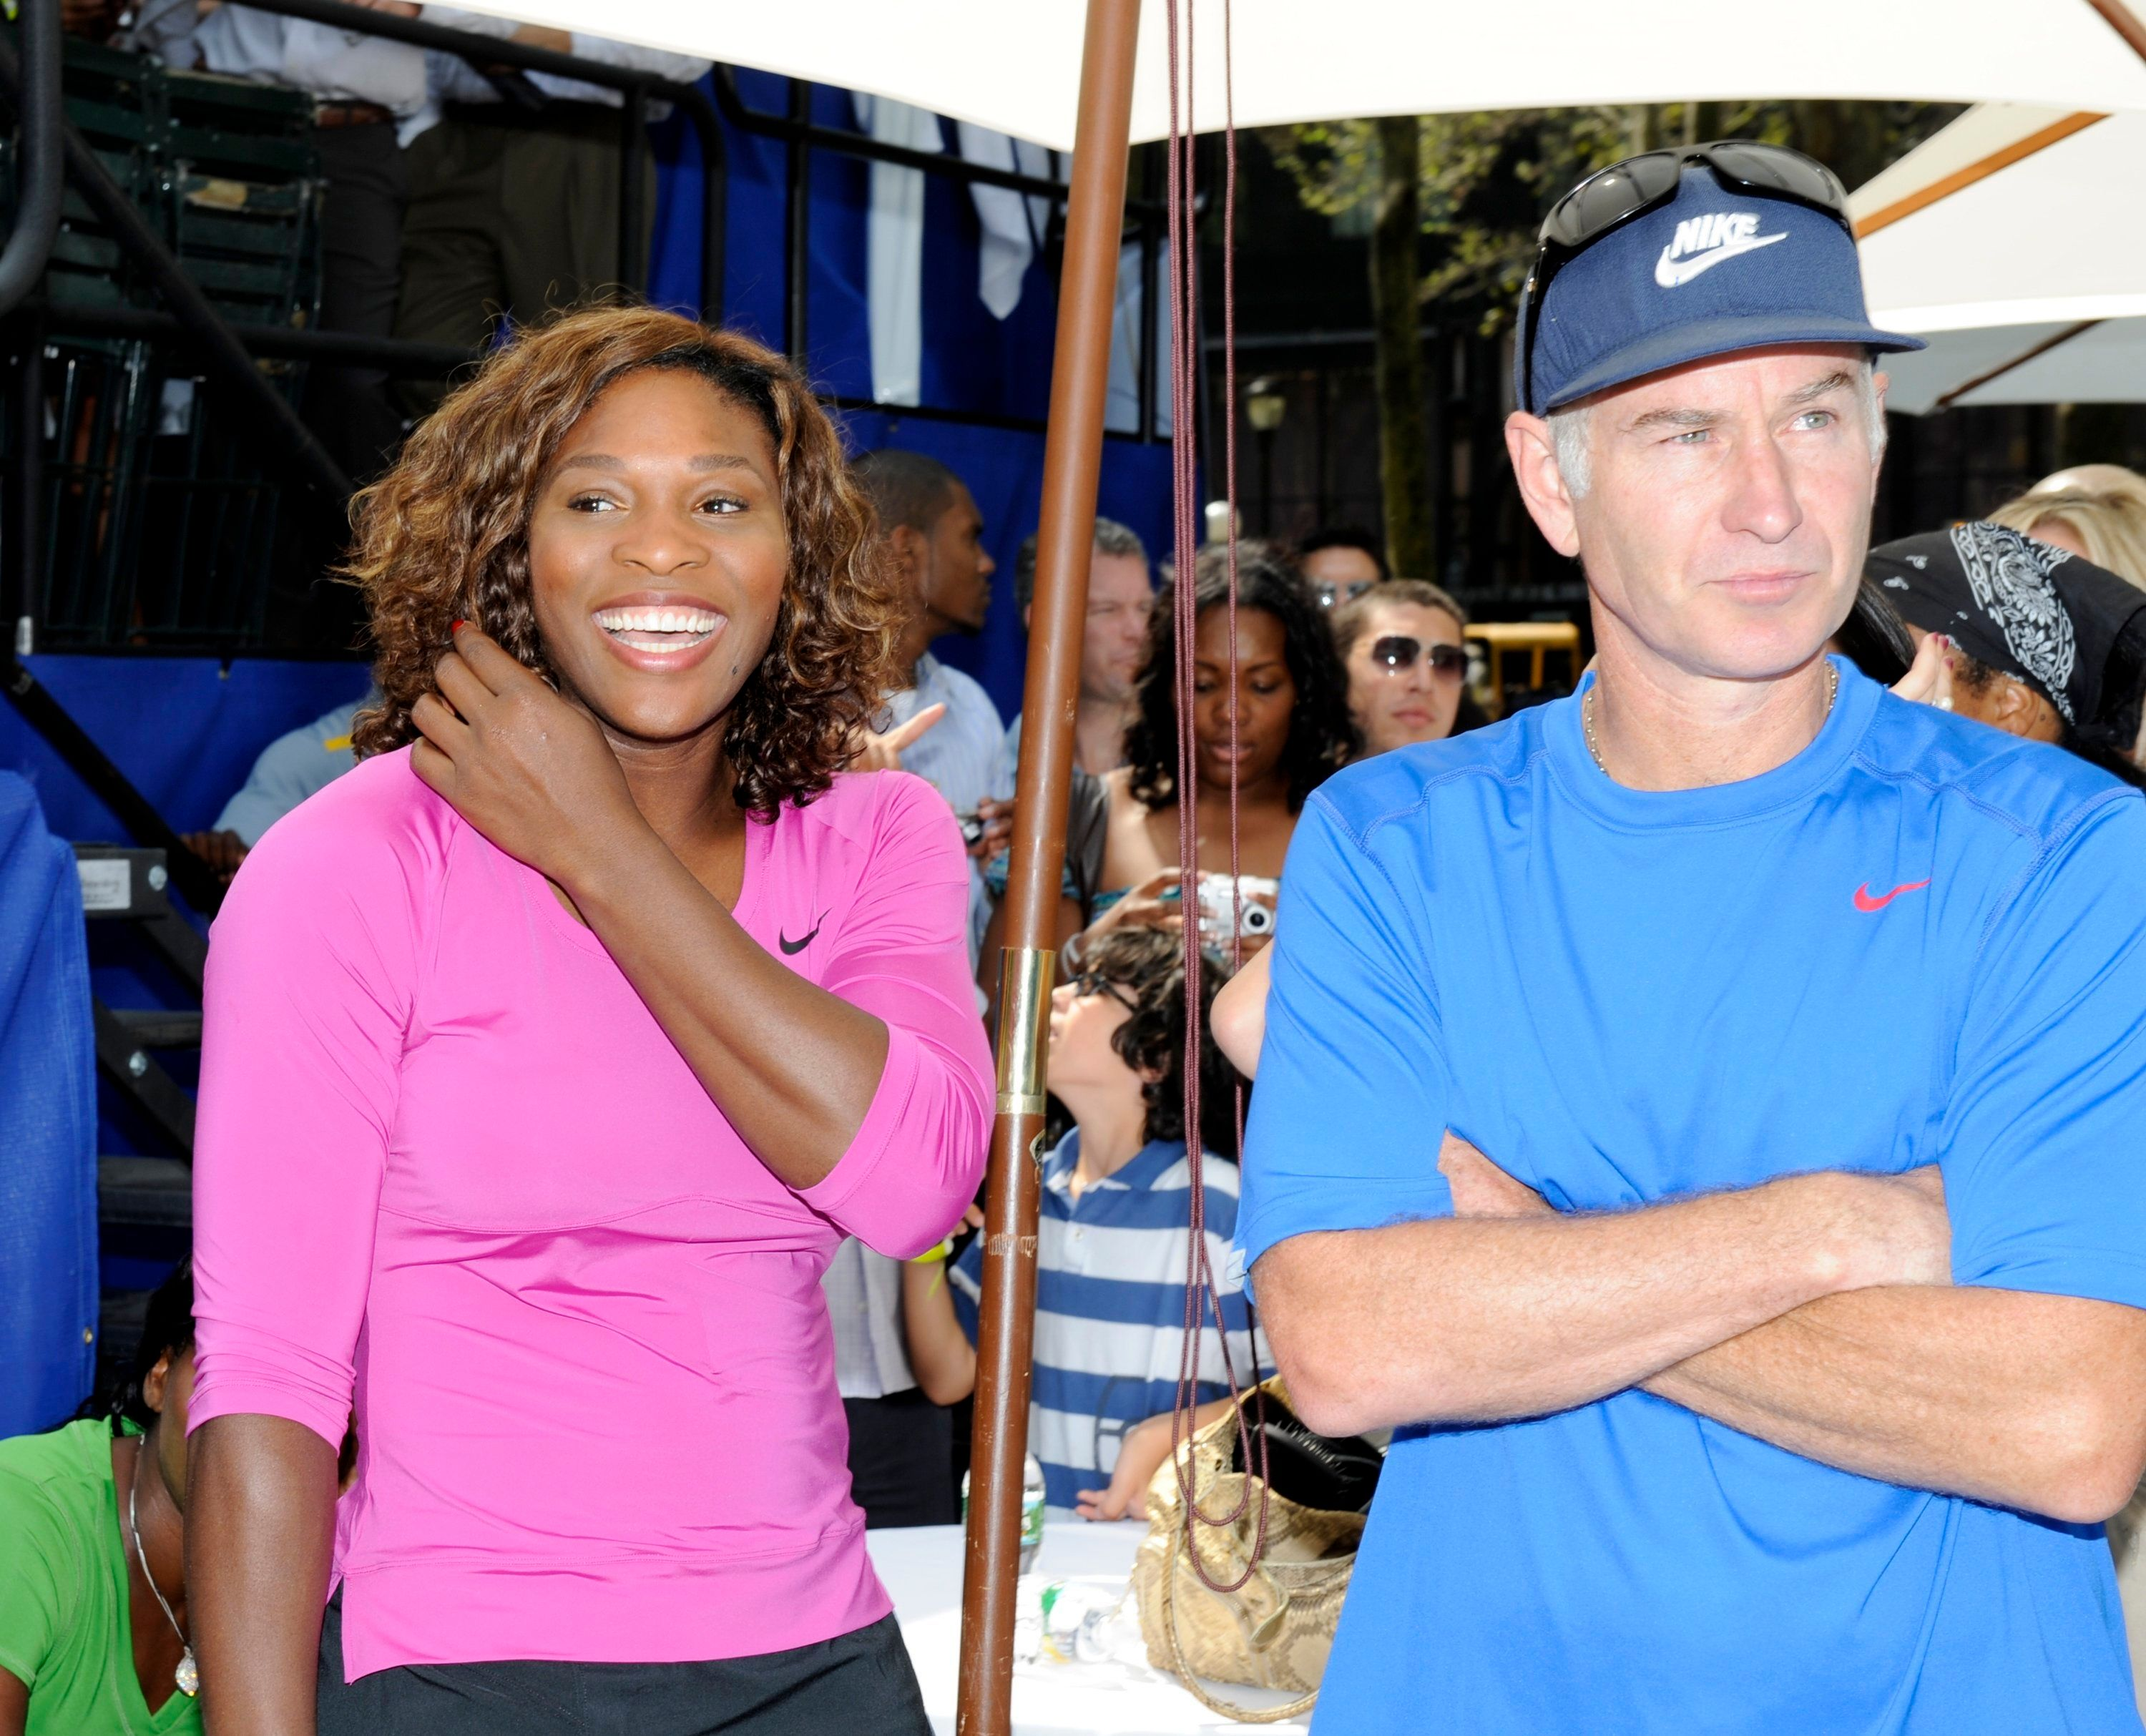 Why do so many people have such a hard time calling Serena Williams the greatest?